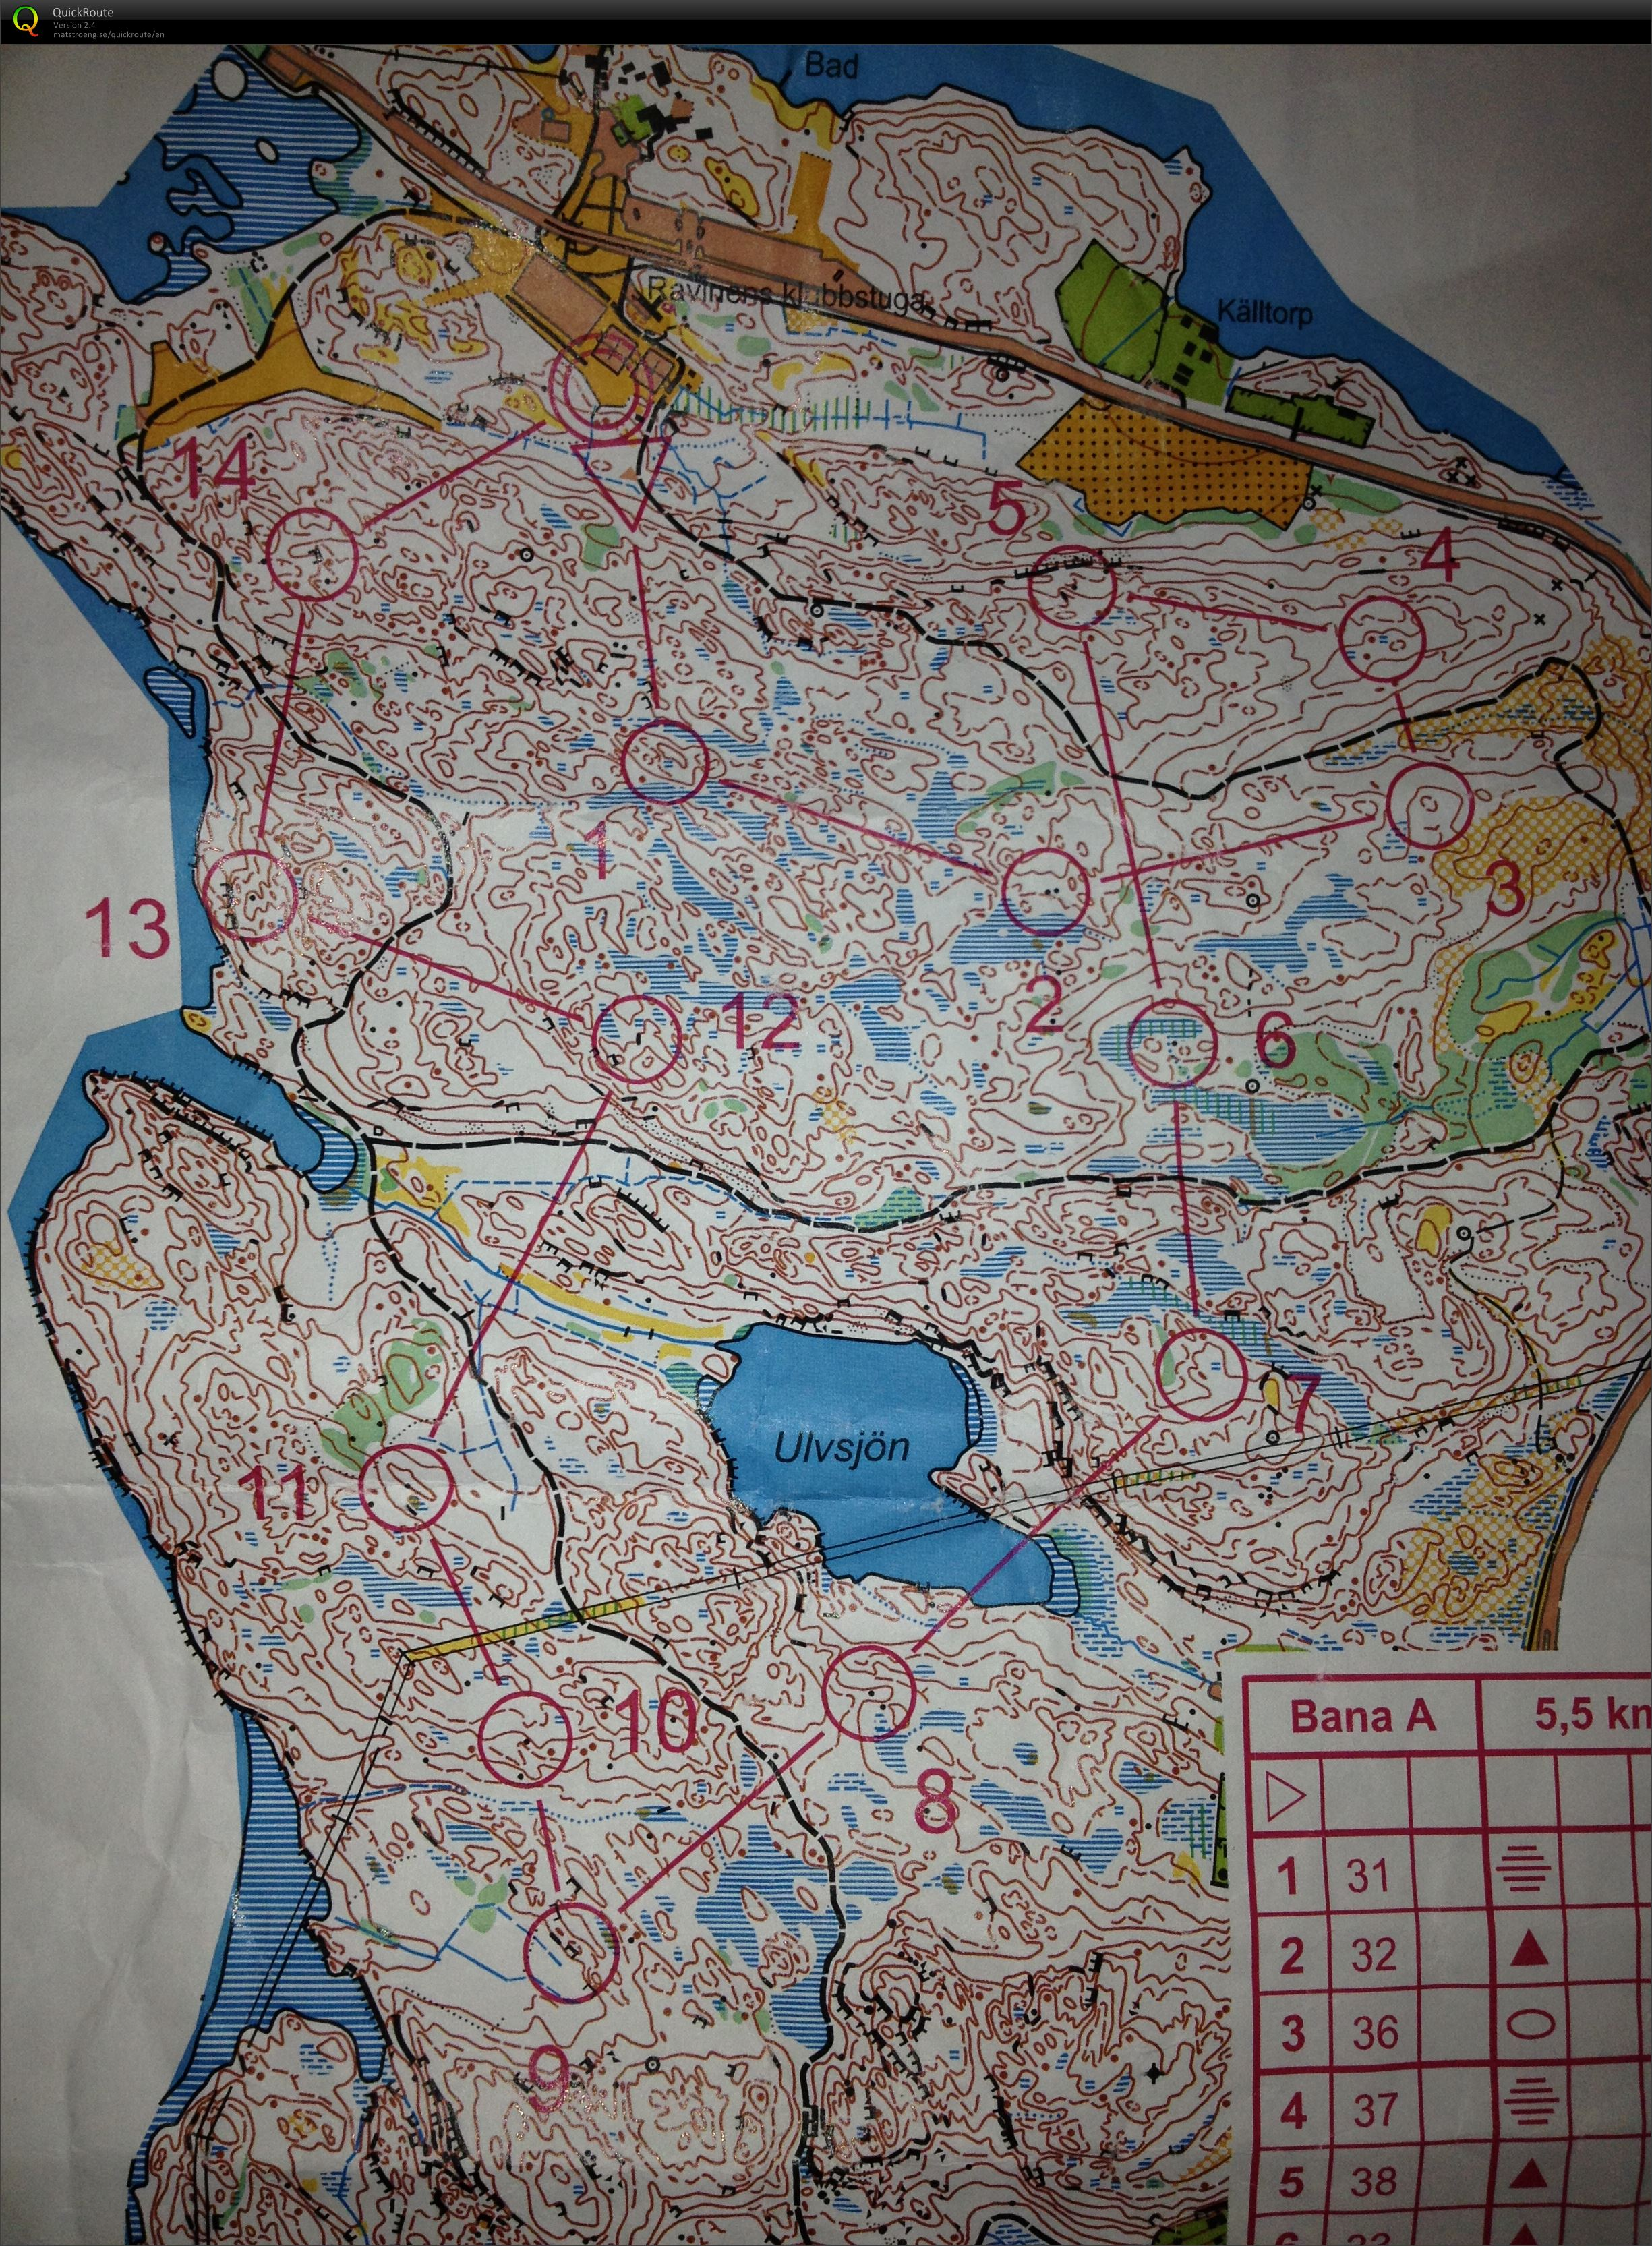 Mostly No Paths and No Kites - Pre-Jukola (13/06/2014)